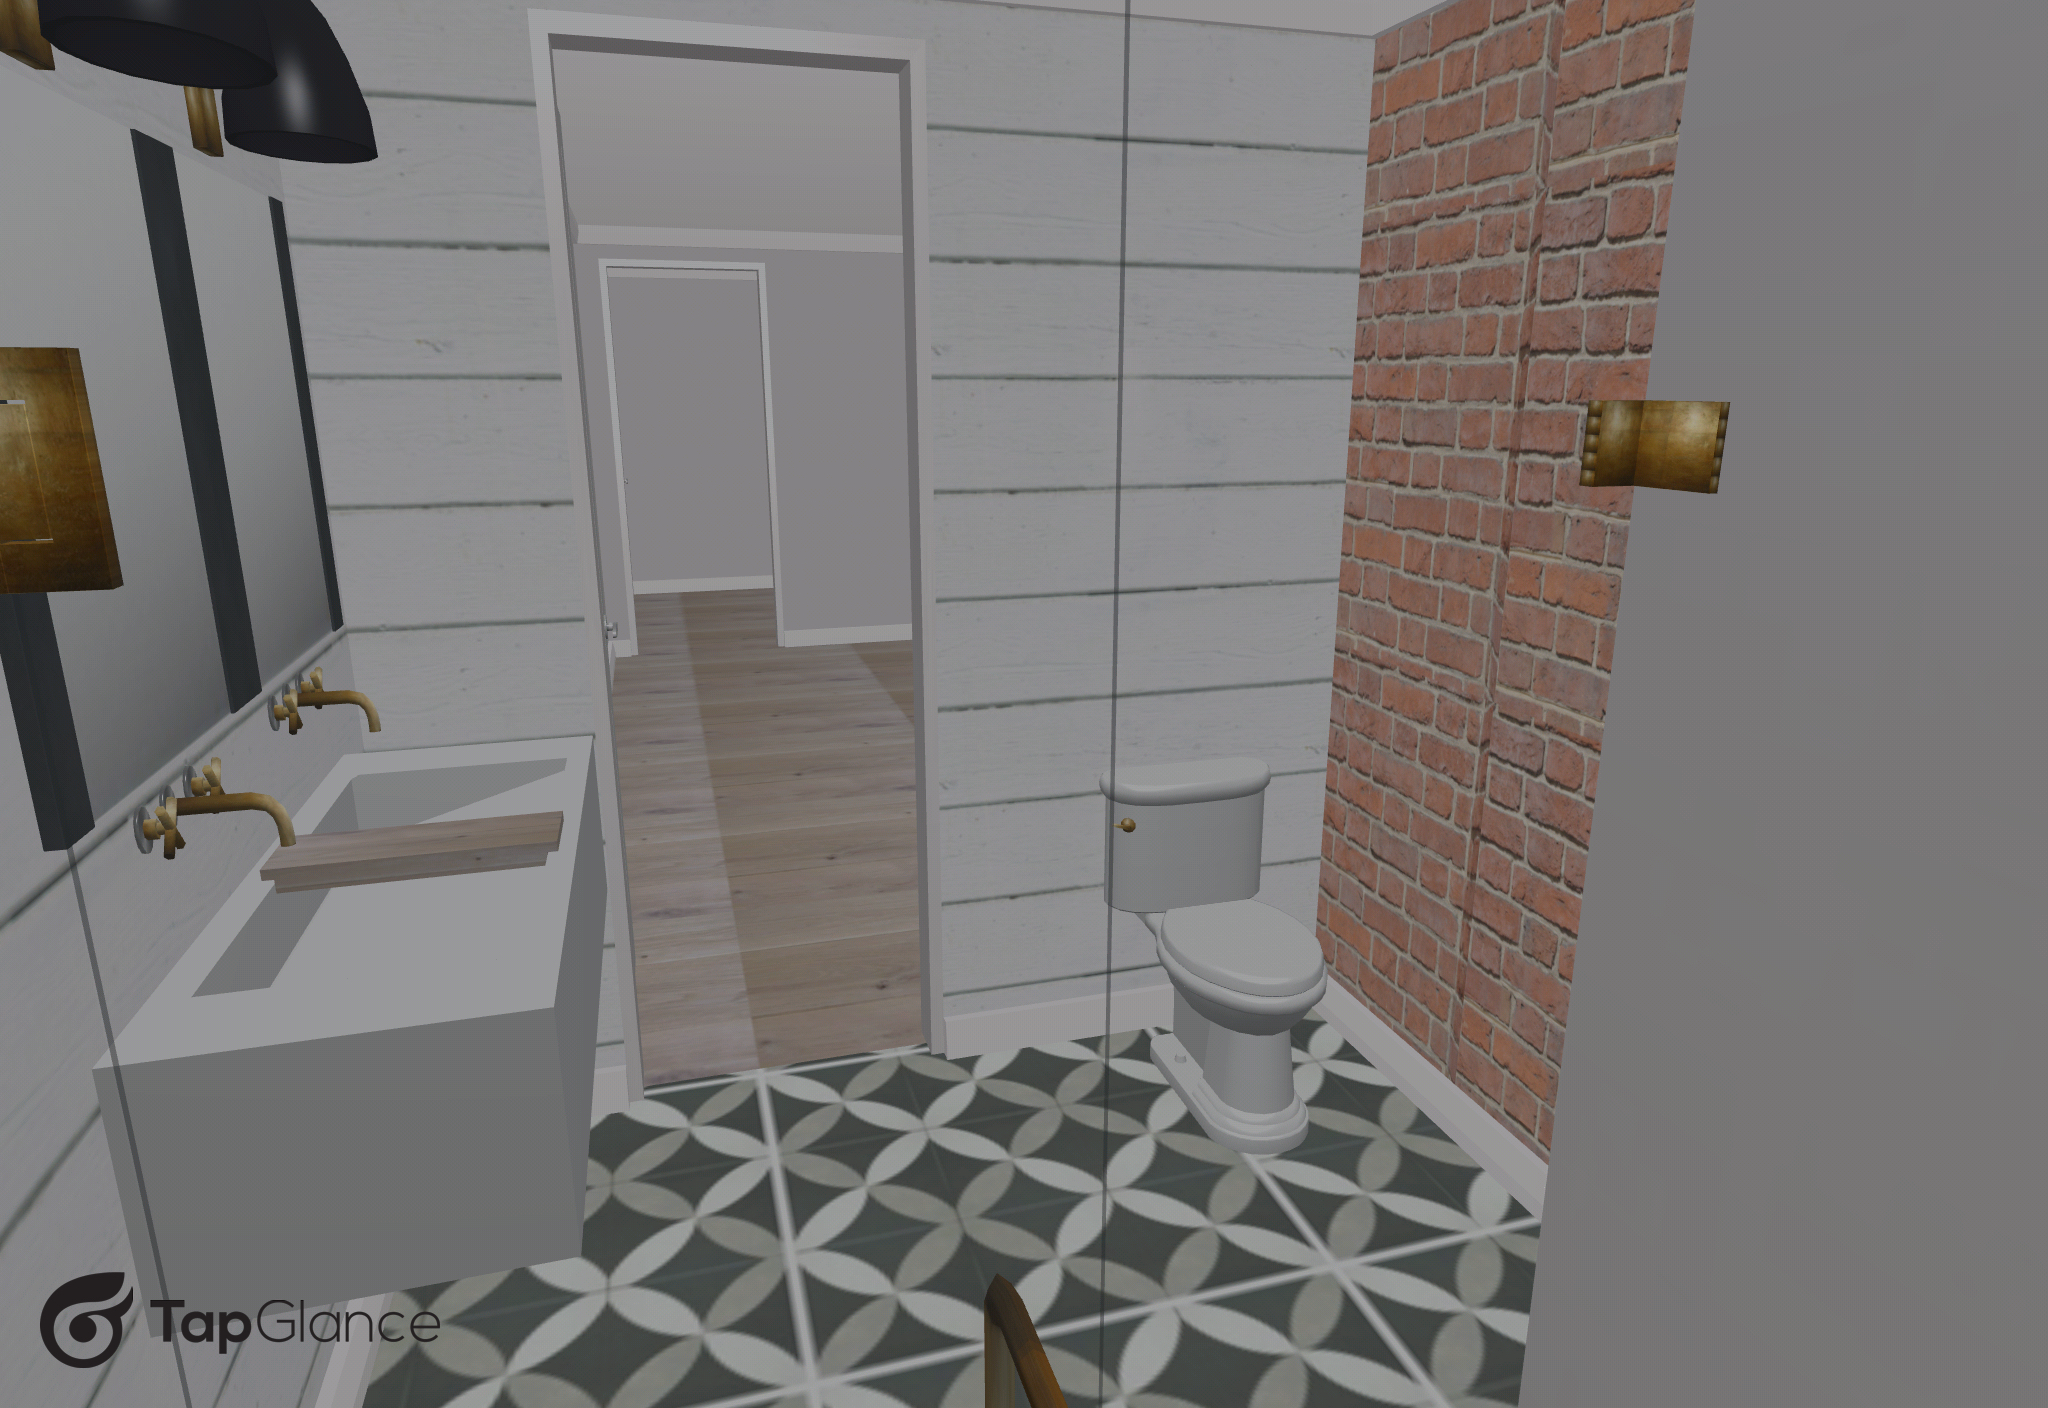 Here's an overall of the new bathroom complete with shiplap and brick for the walls and patterned tile for the floors.